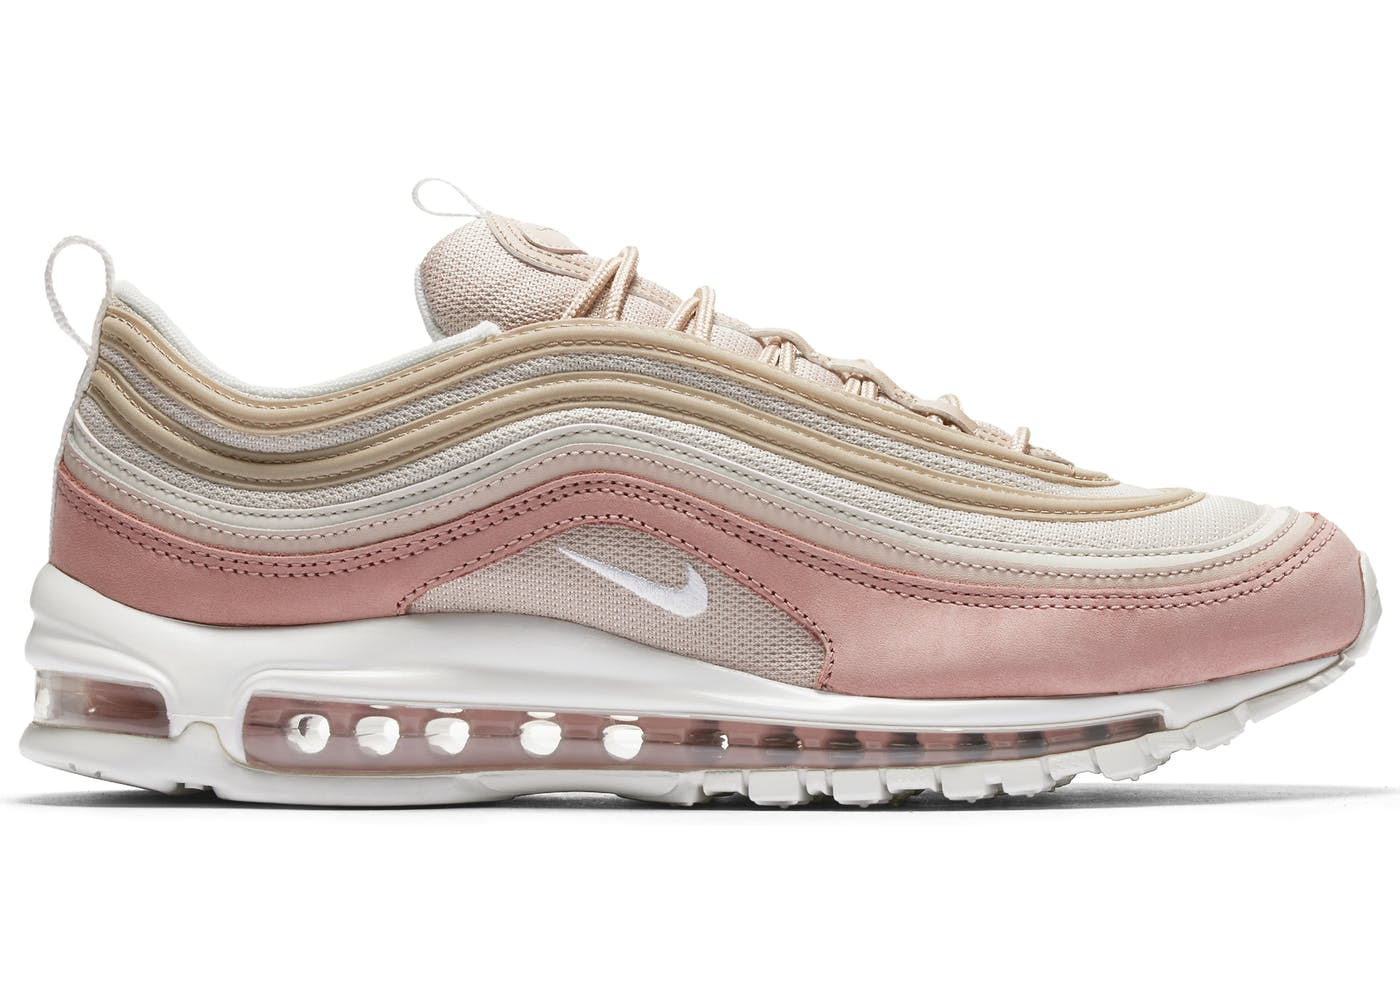 Air Max 97 Particle Beige